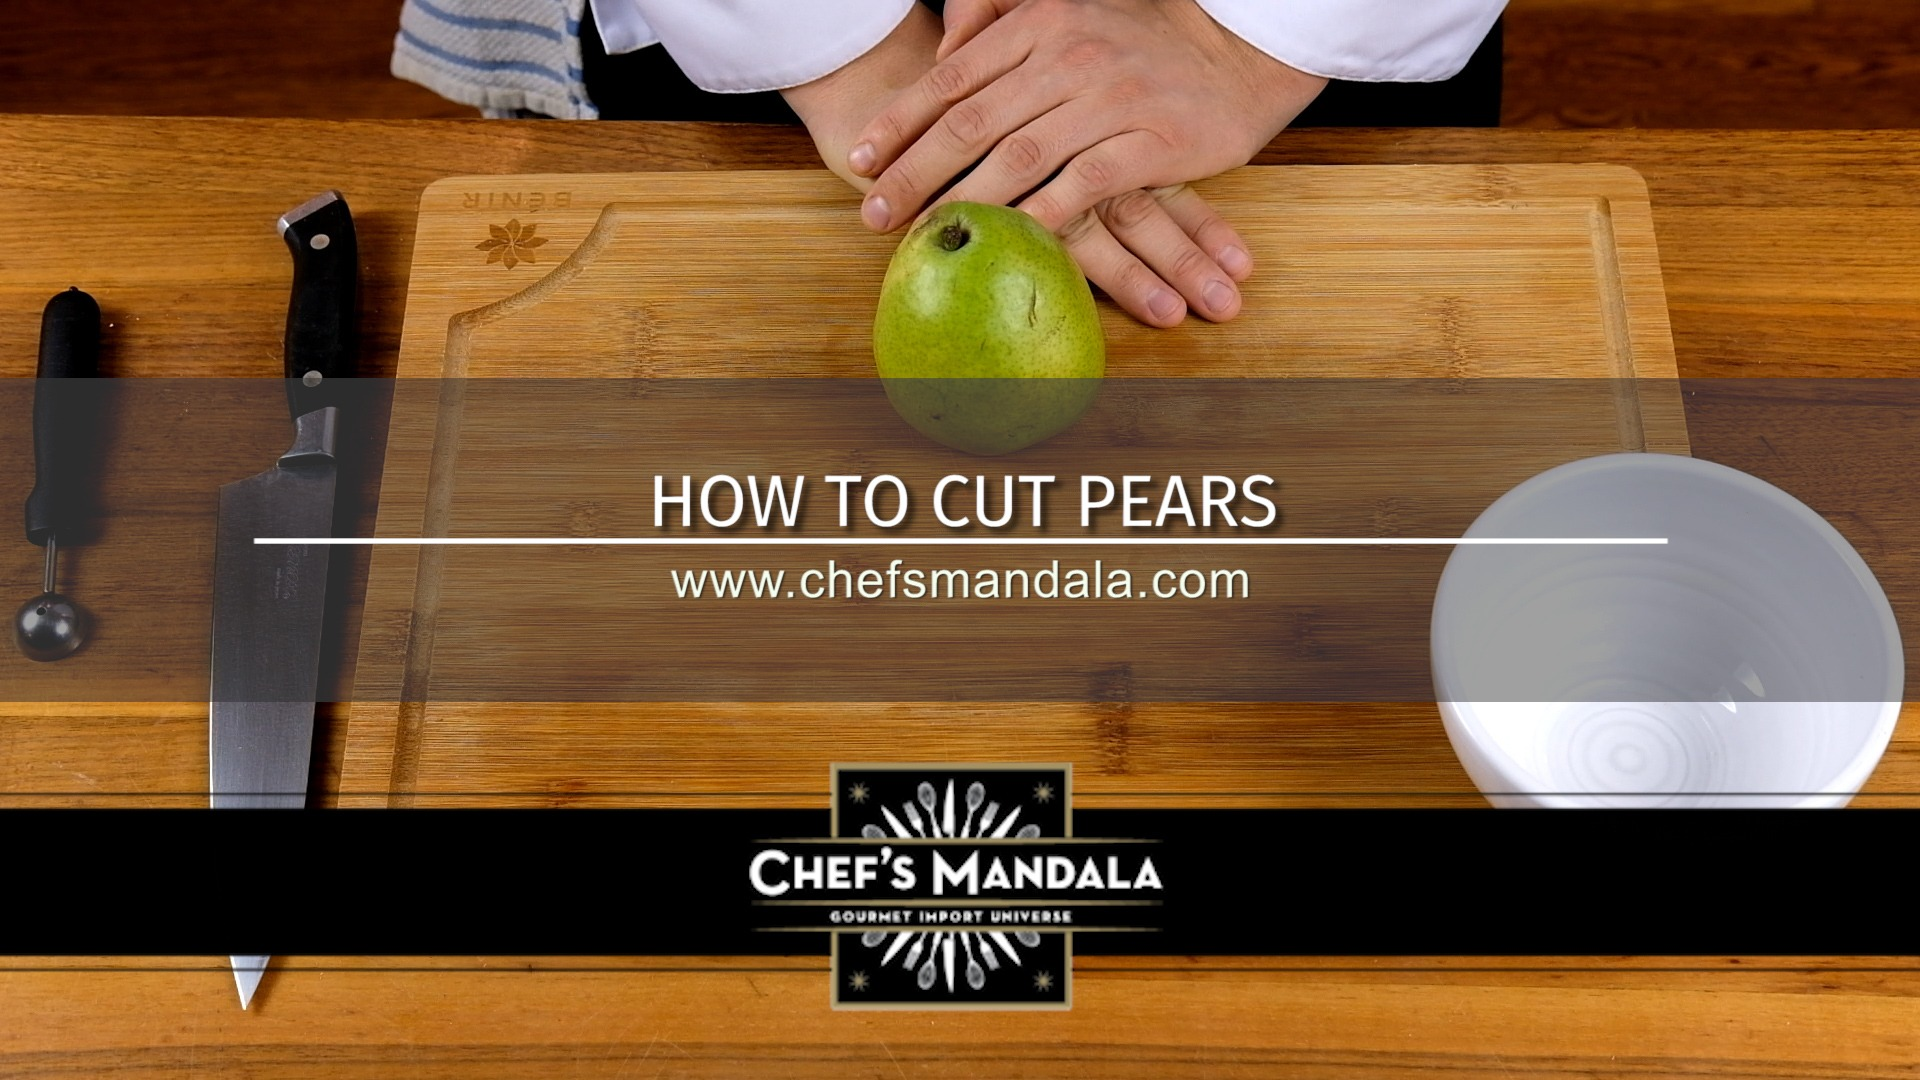 HOW TO CUT PEARS